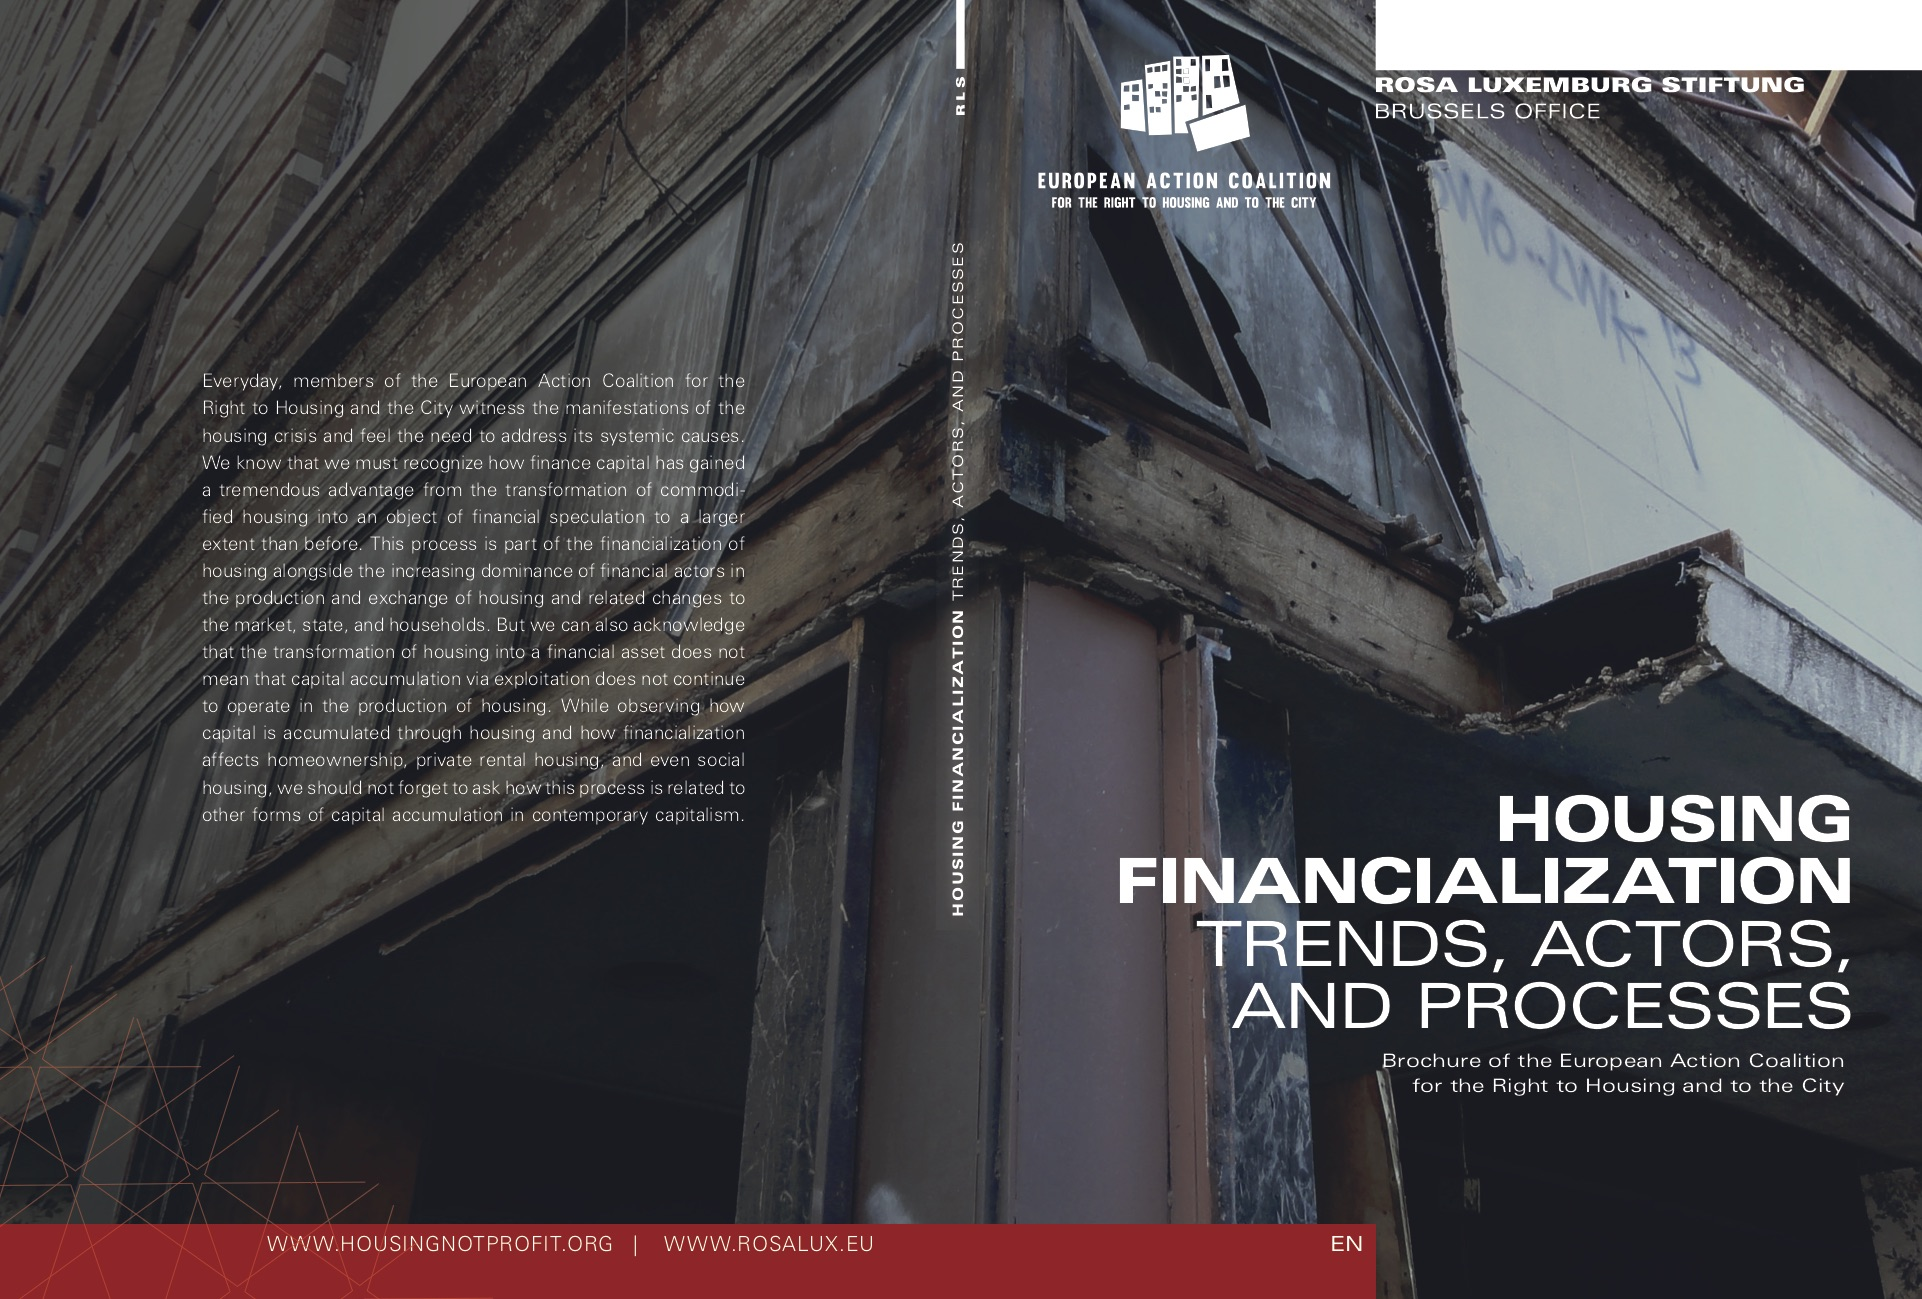 HOUSING FINANCIALIZATION. TRENDS, ACTORS, AND PROCESSES cover